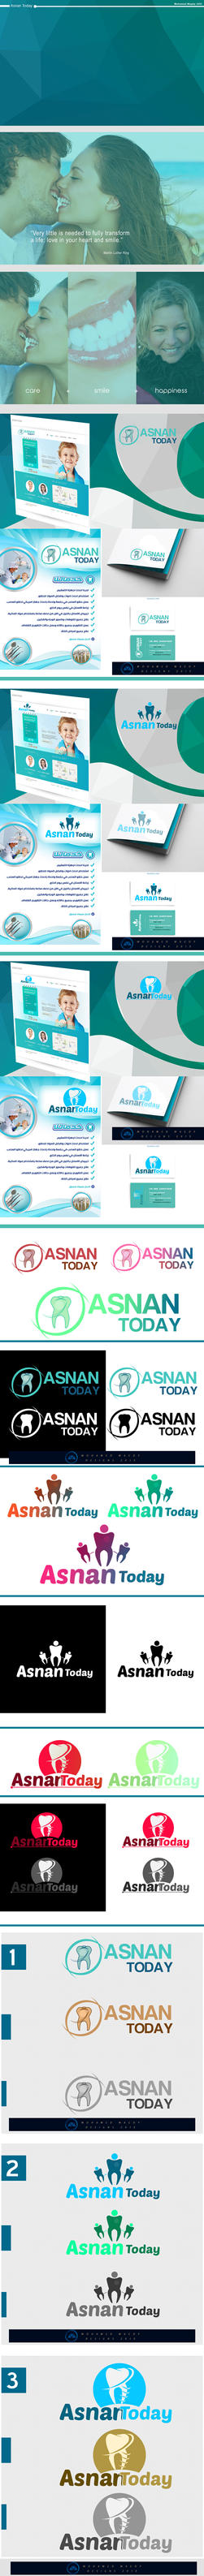 Asnan Today Collection Logo by mnoso90